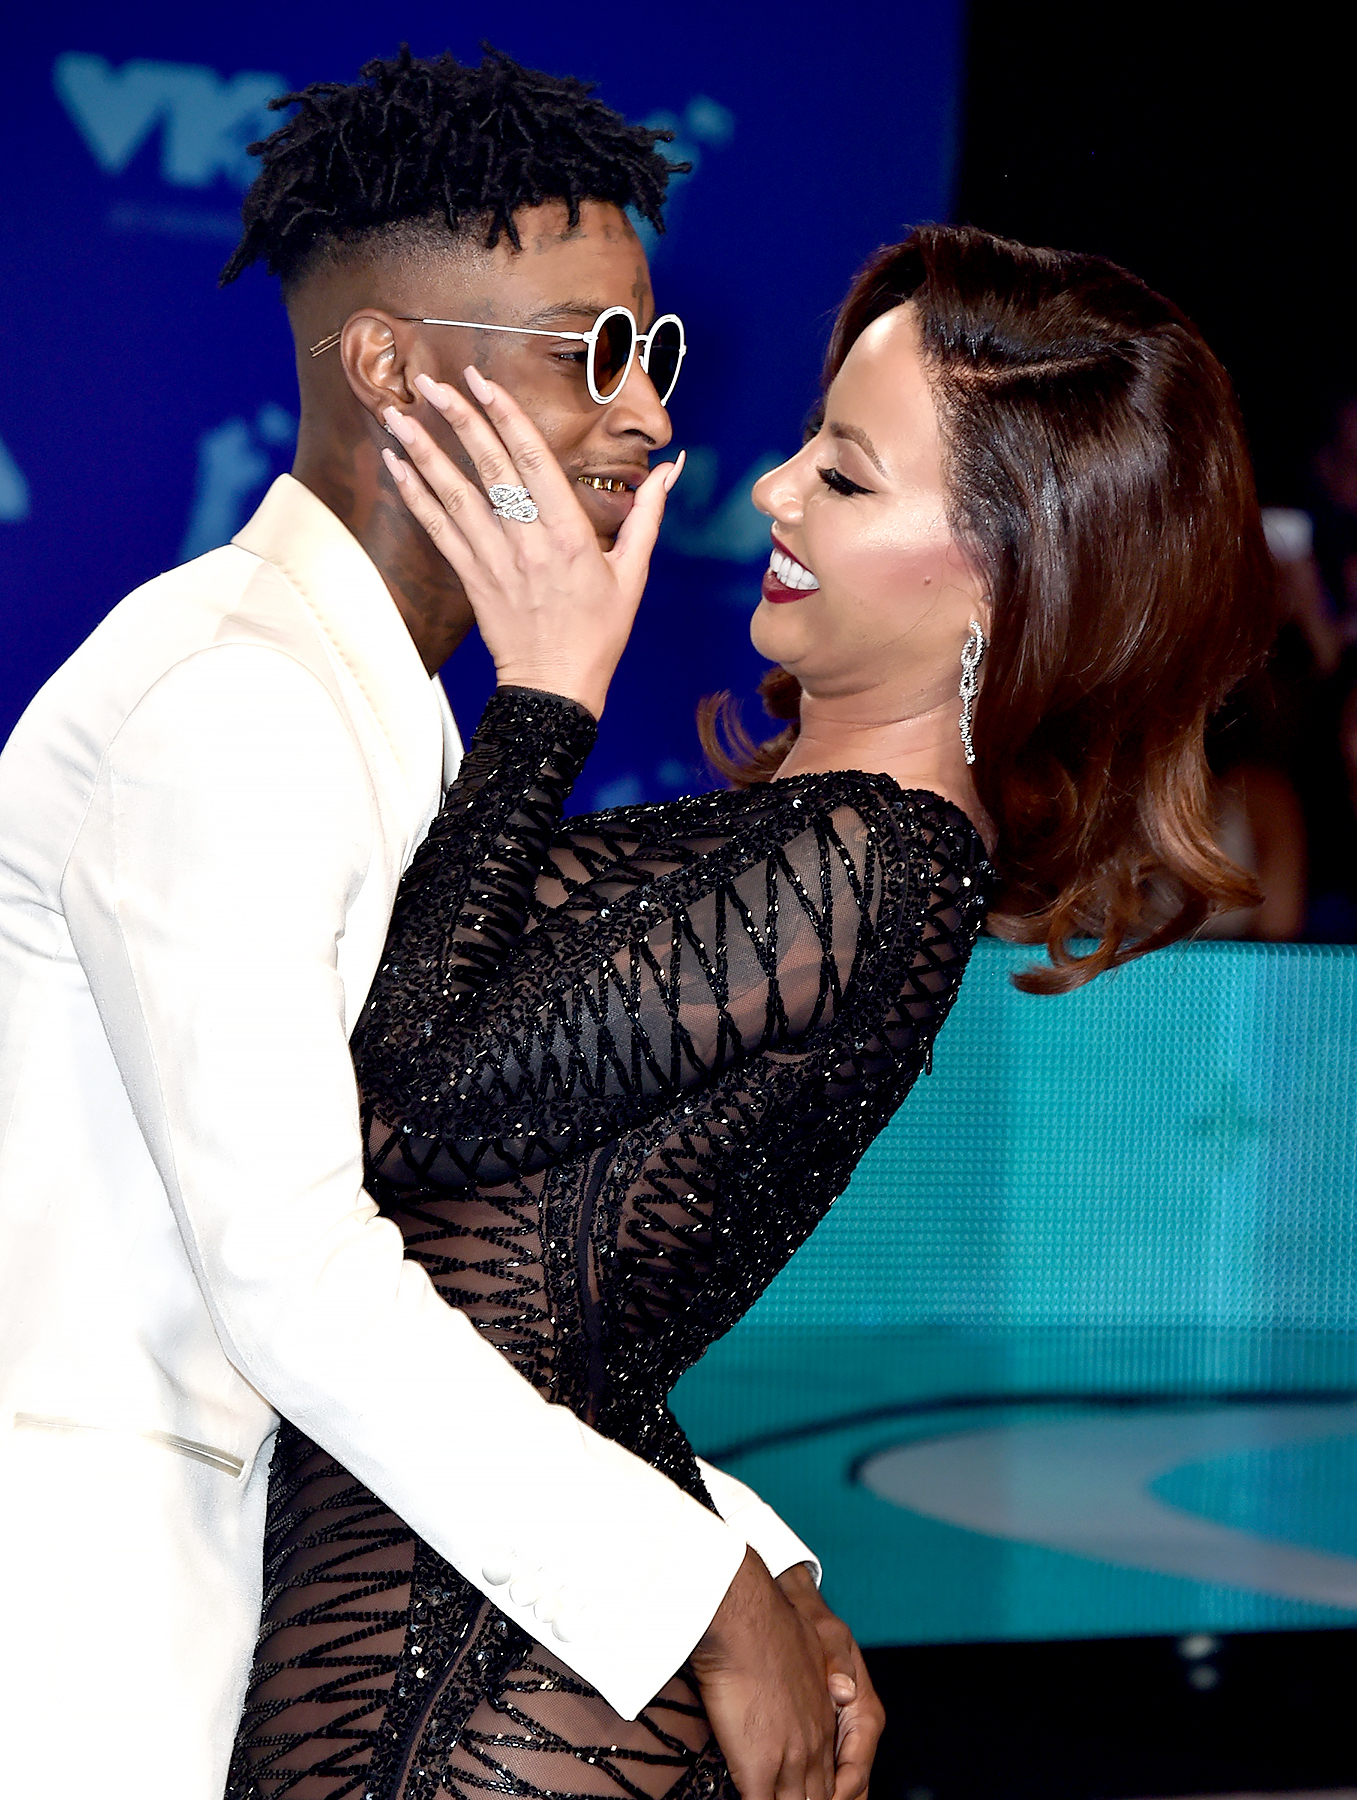 21 Savage and Amber Rose attend the 2017 MTV Video Music Awards at The Forum on August 27, 2017 in Inglewood, California.